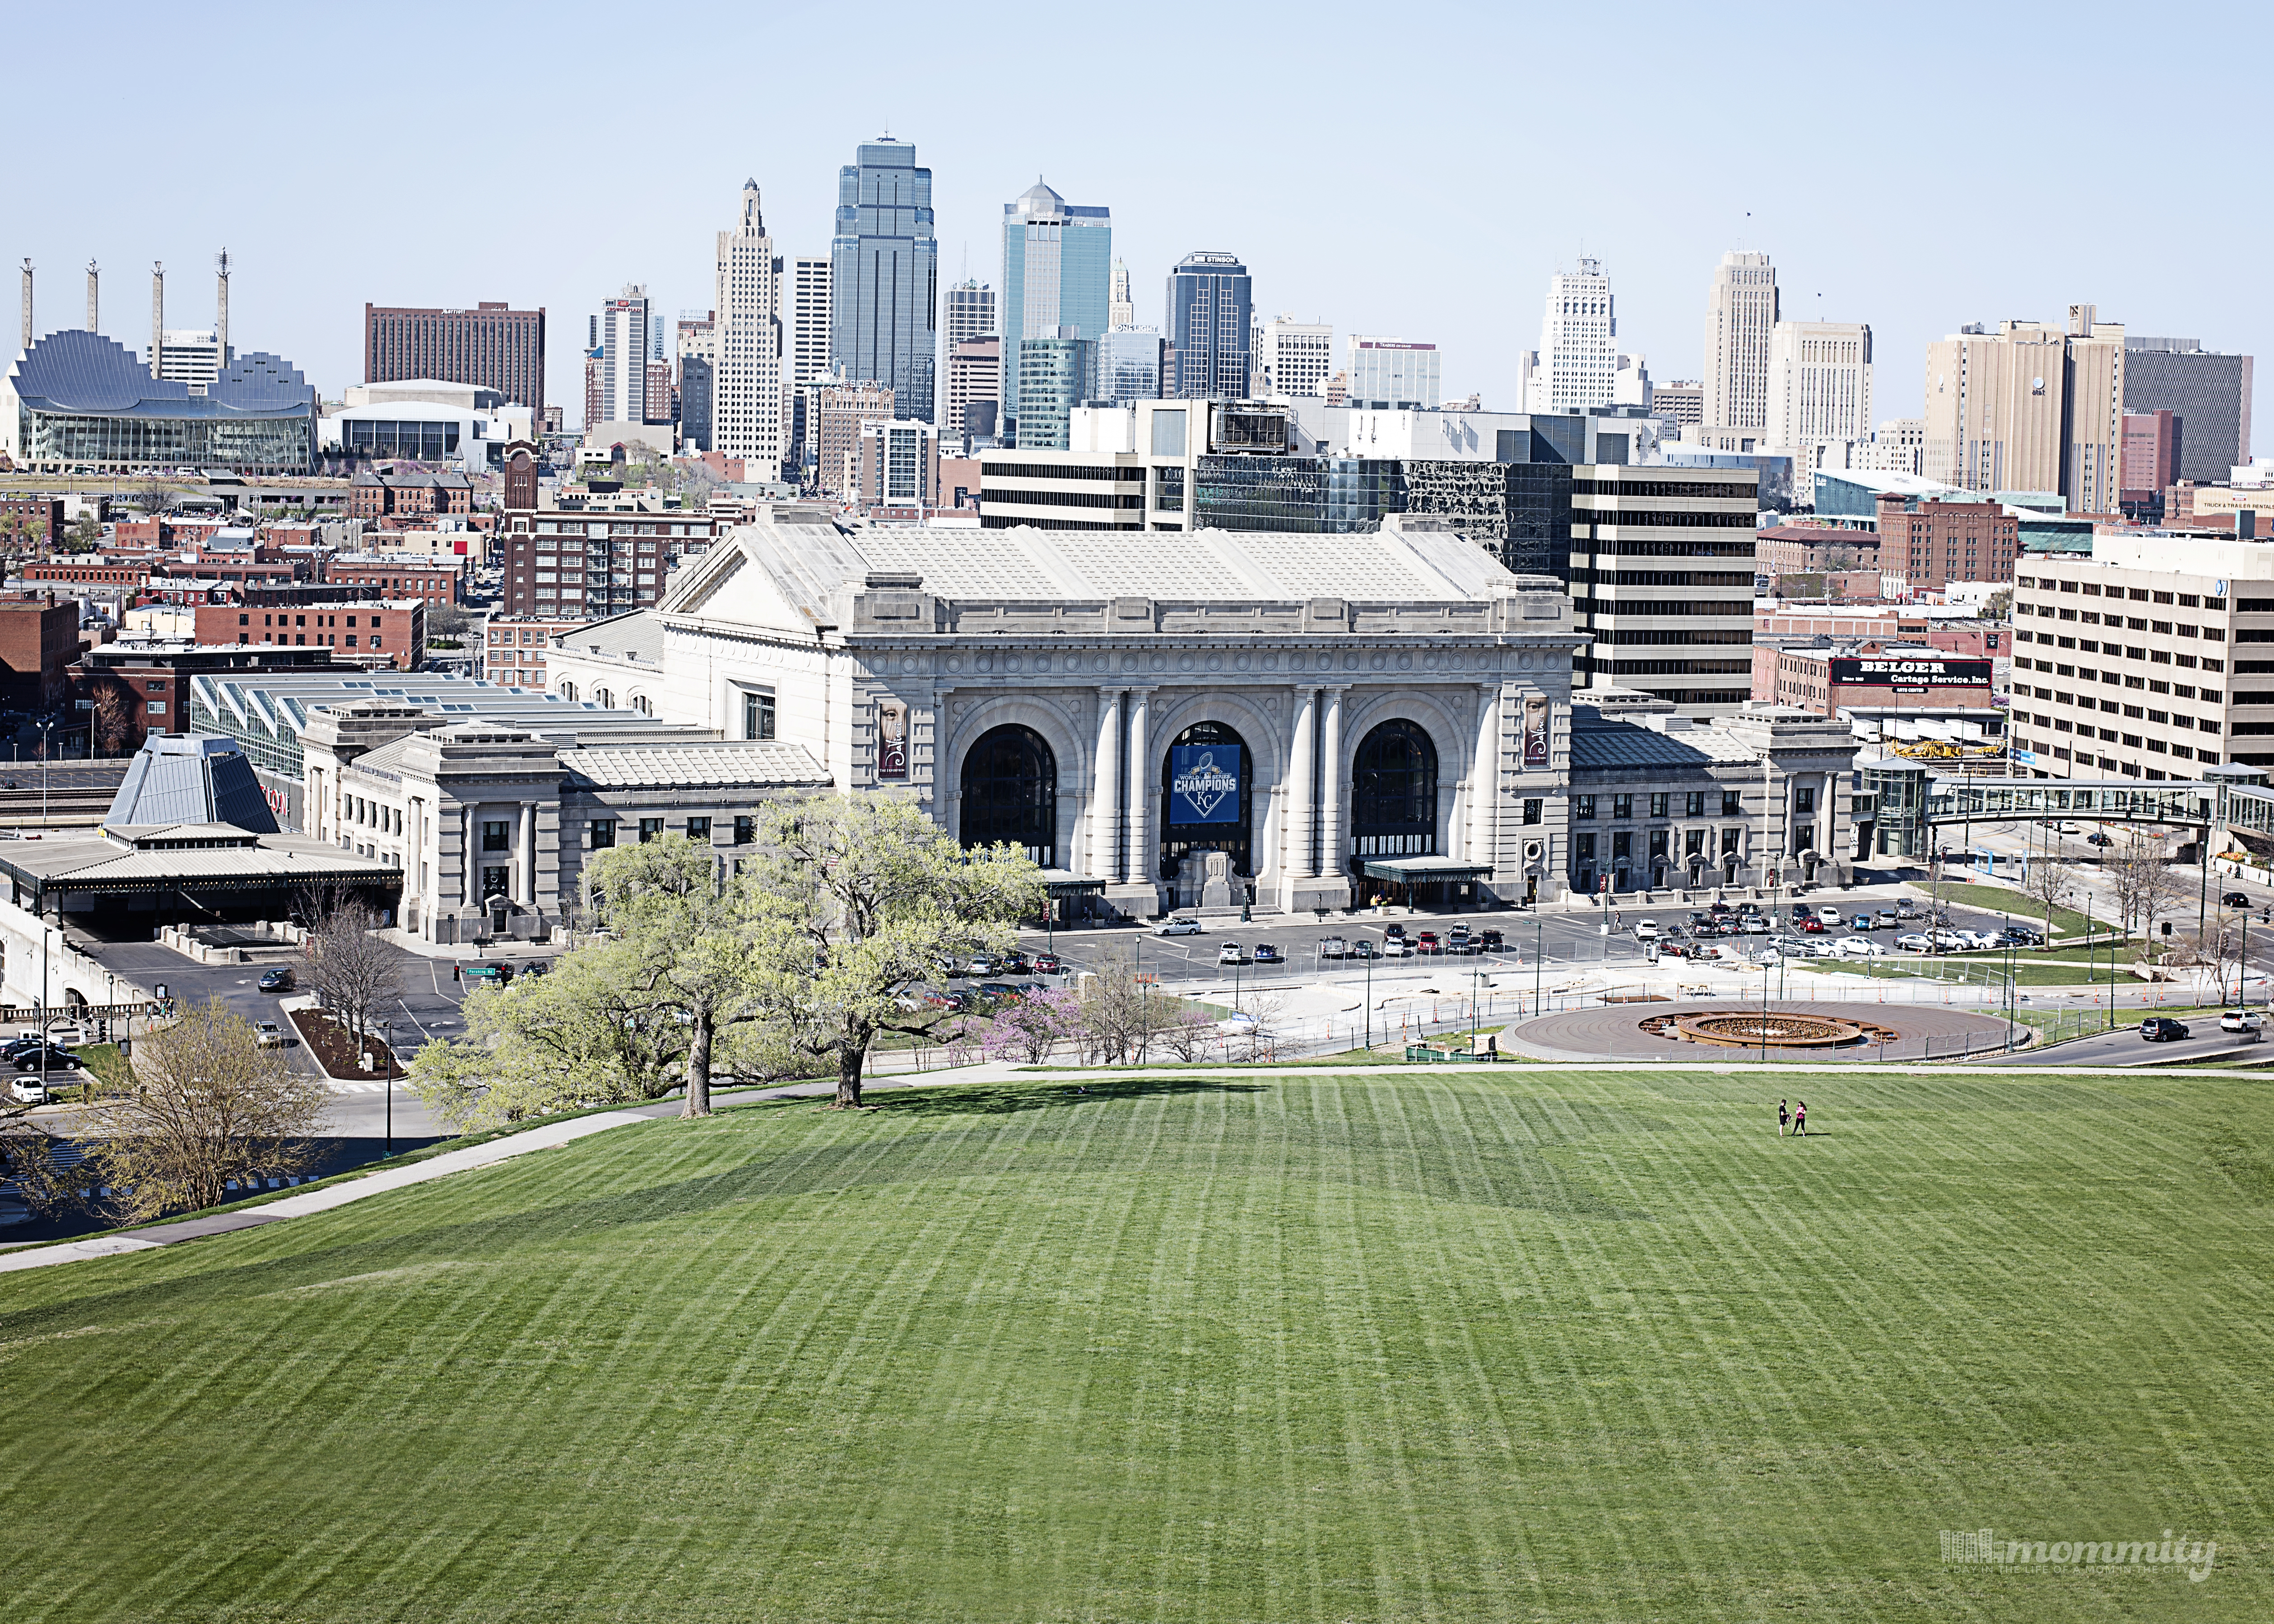 Kansas City is More than the Land of Oz and Farms! There are views, attractions and so much more to this great area. This post shows an inside peek of what we love most!